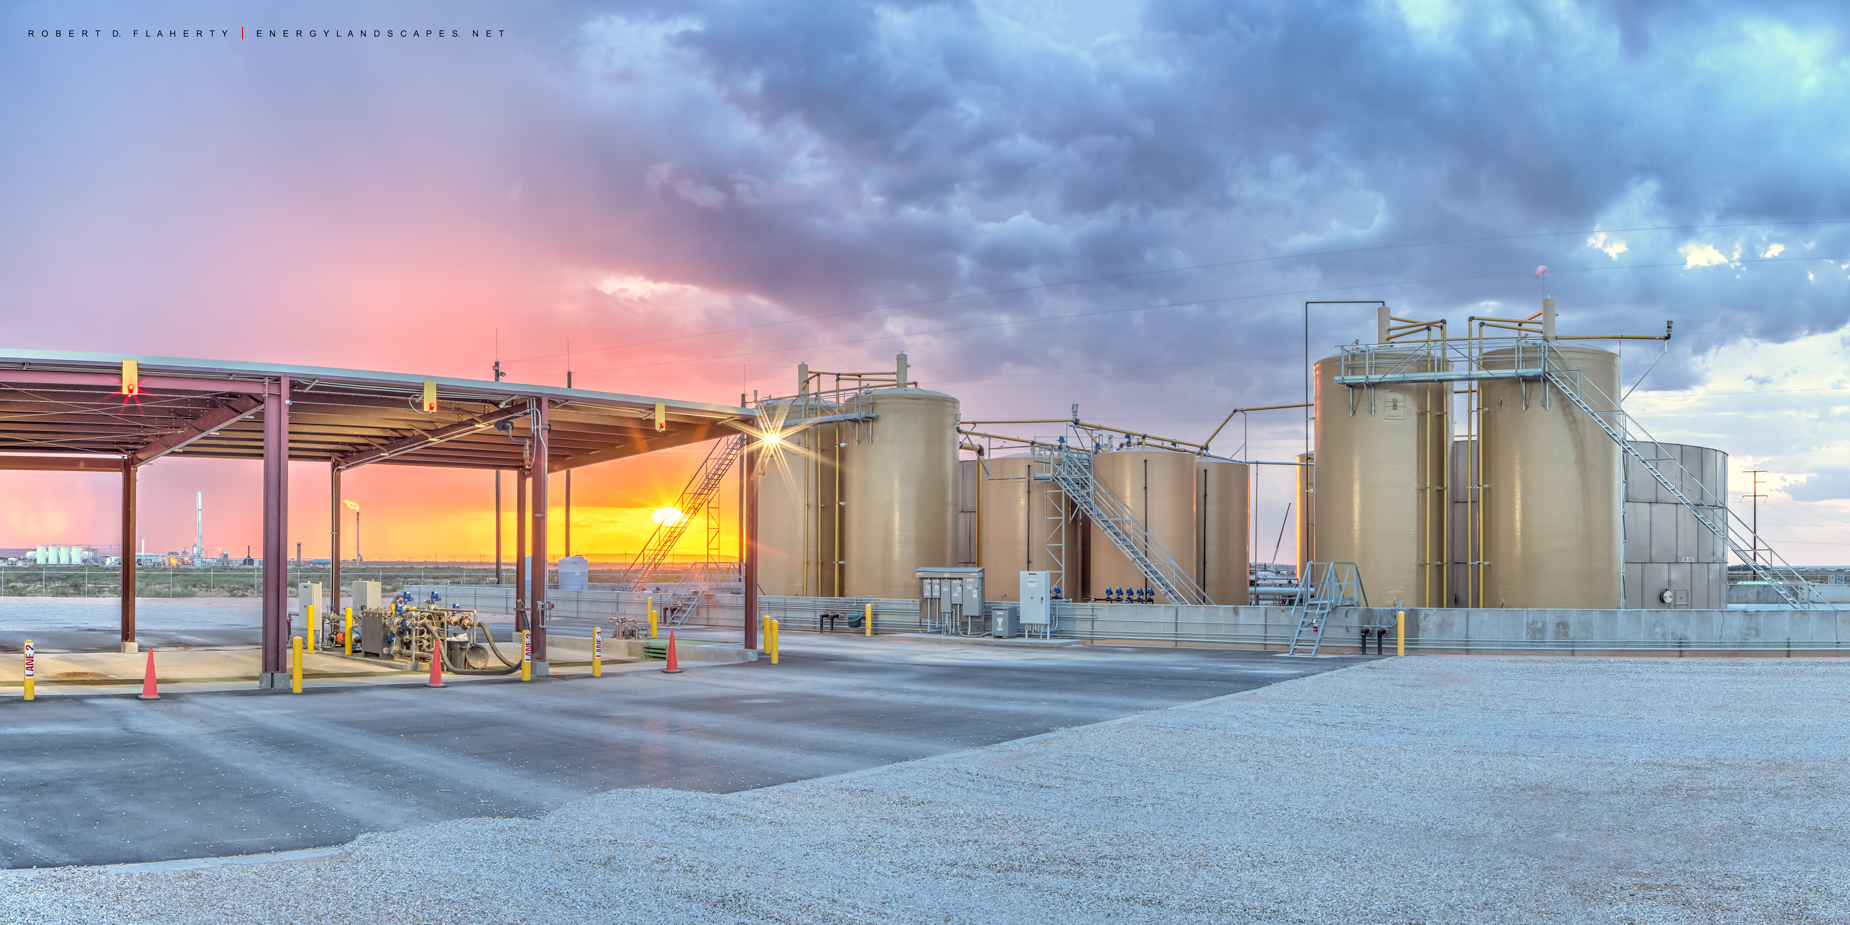 salt water disposal unit, midstream, SWD, networked SWD, sunset, Summer, Delaware Basin, Malaga New Mexico, New Mexico, photo